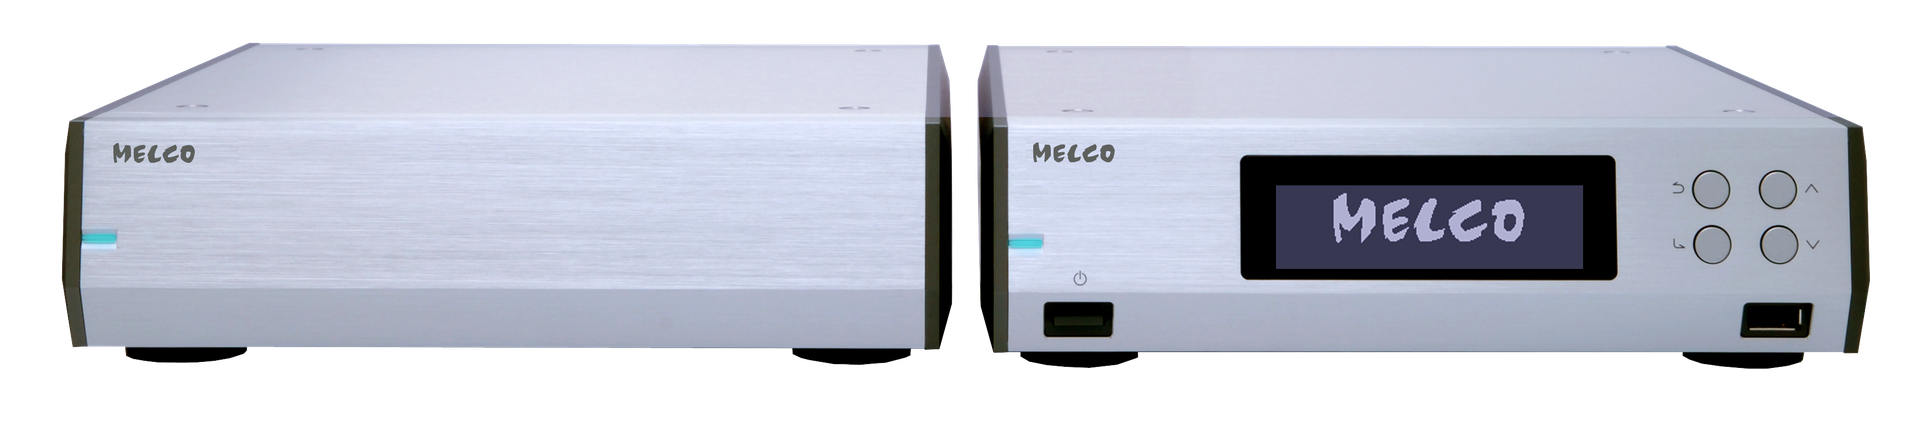 Melco N10P-H30 Dual Chassis Music Server